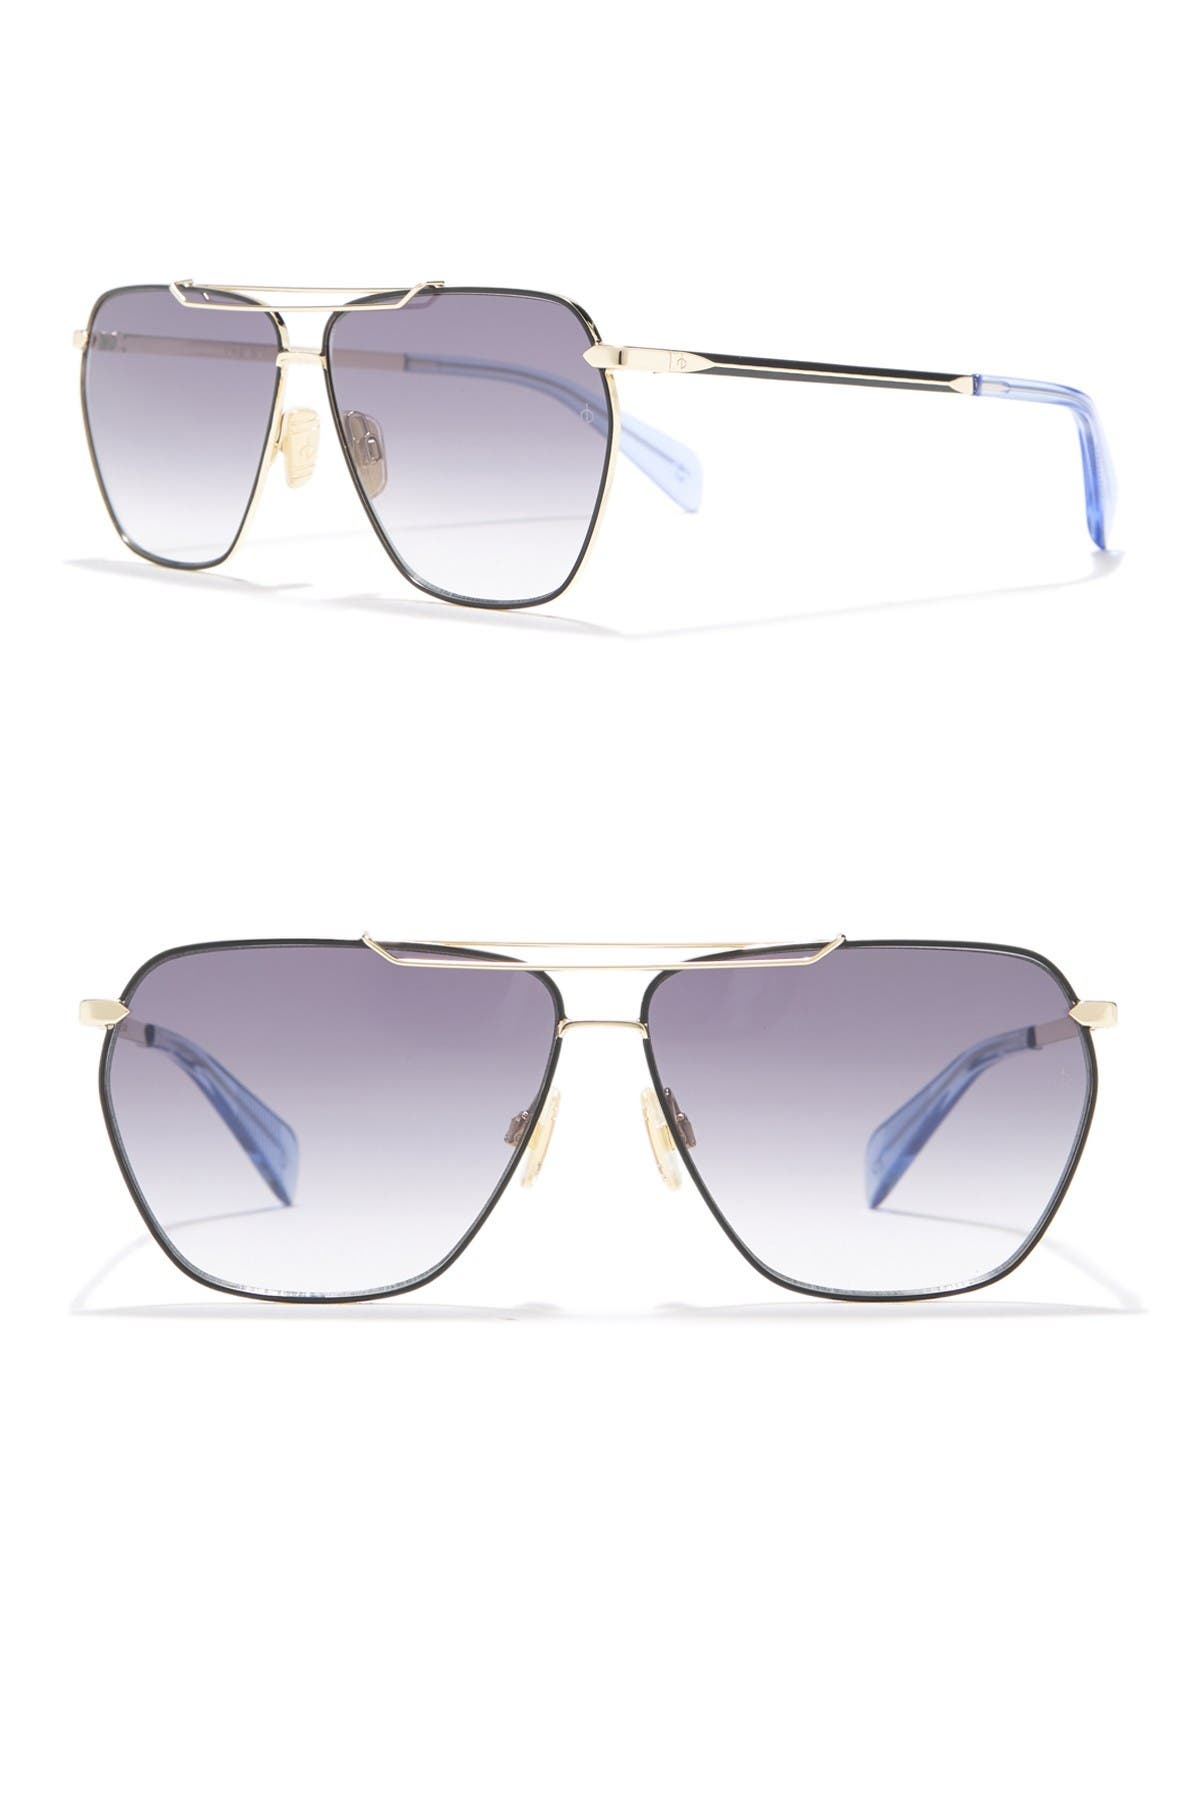 Image of Rag & Bone Women's 61mm Unique Brow Bar Sunglasses